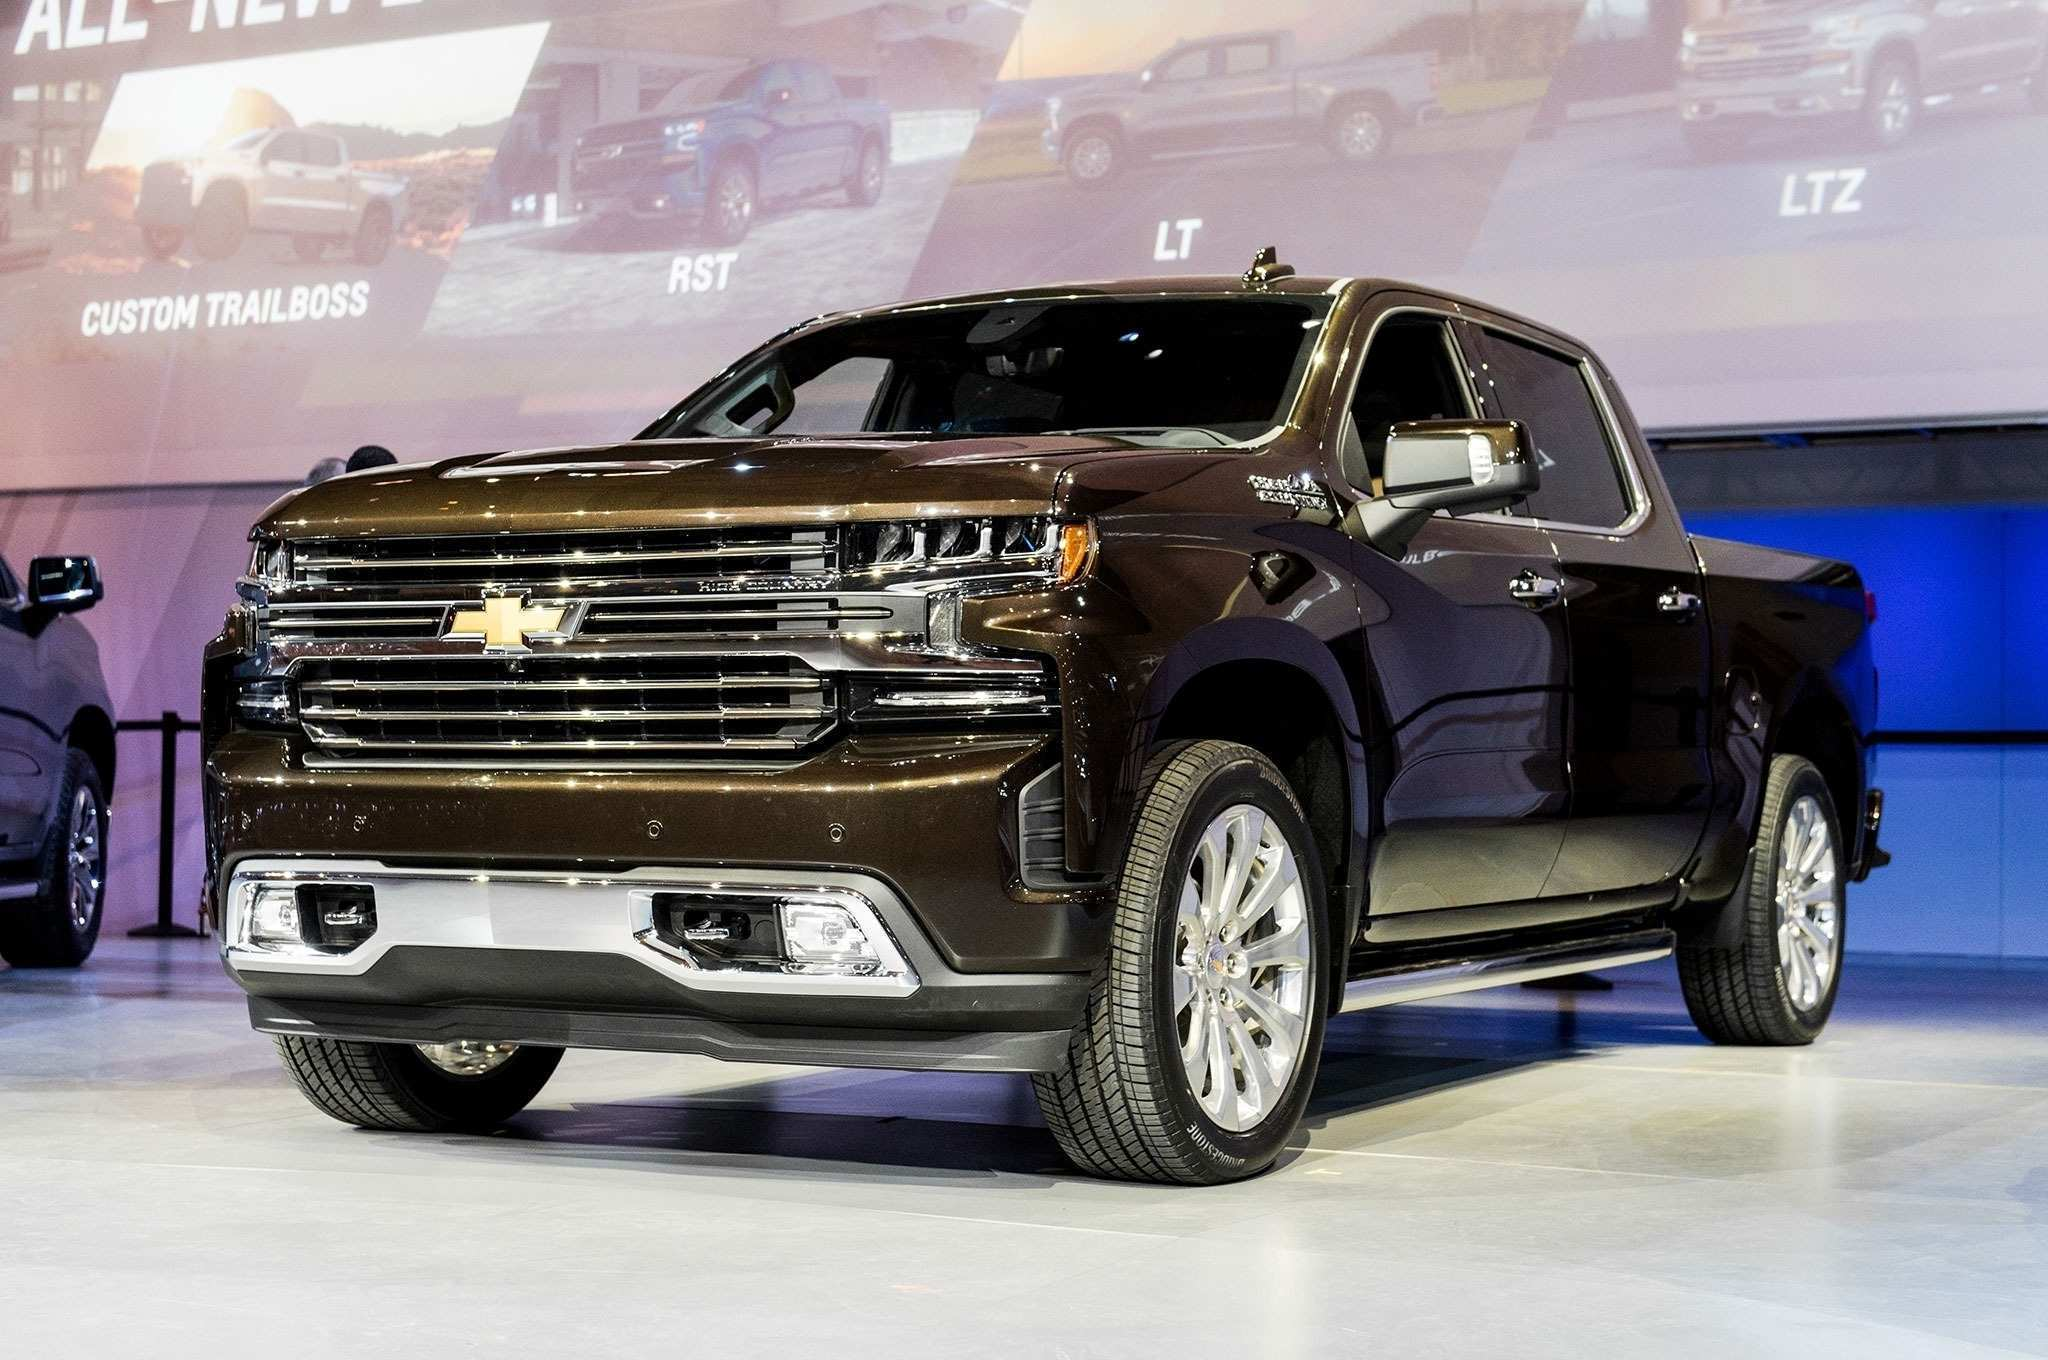 74 The Best 2019 Chevy Tahoe Z71 Ss Interior